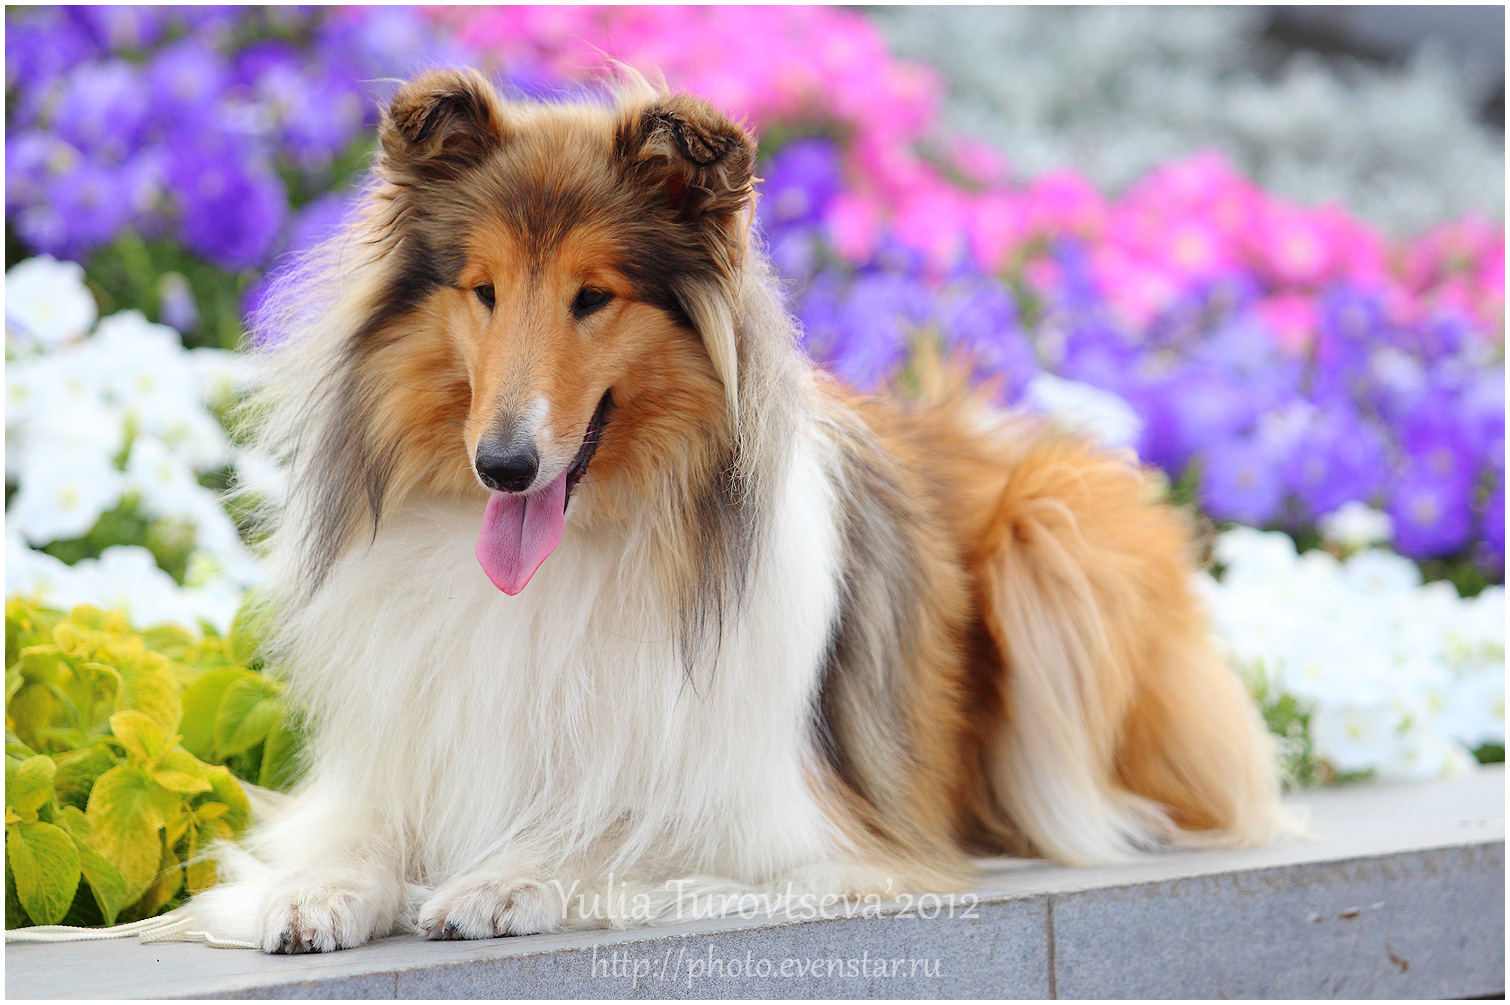 Collie, Rough Dog: Collie, Collie Rough Dog In Flowers Pic Breed